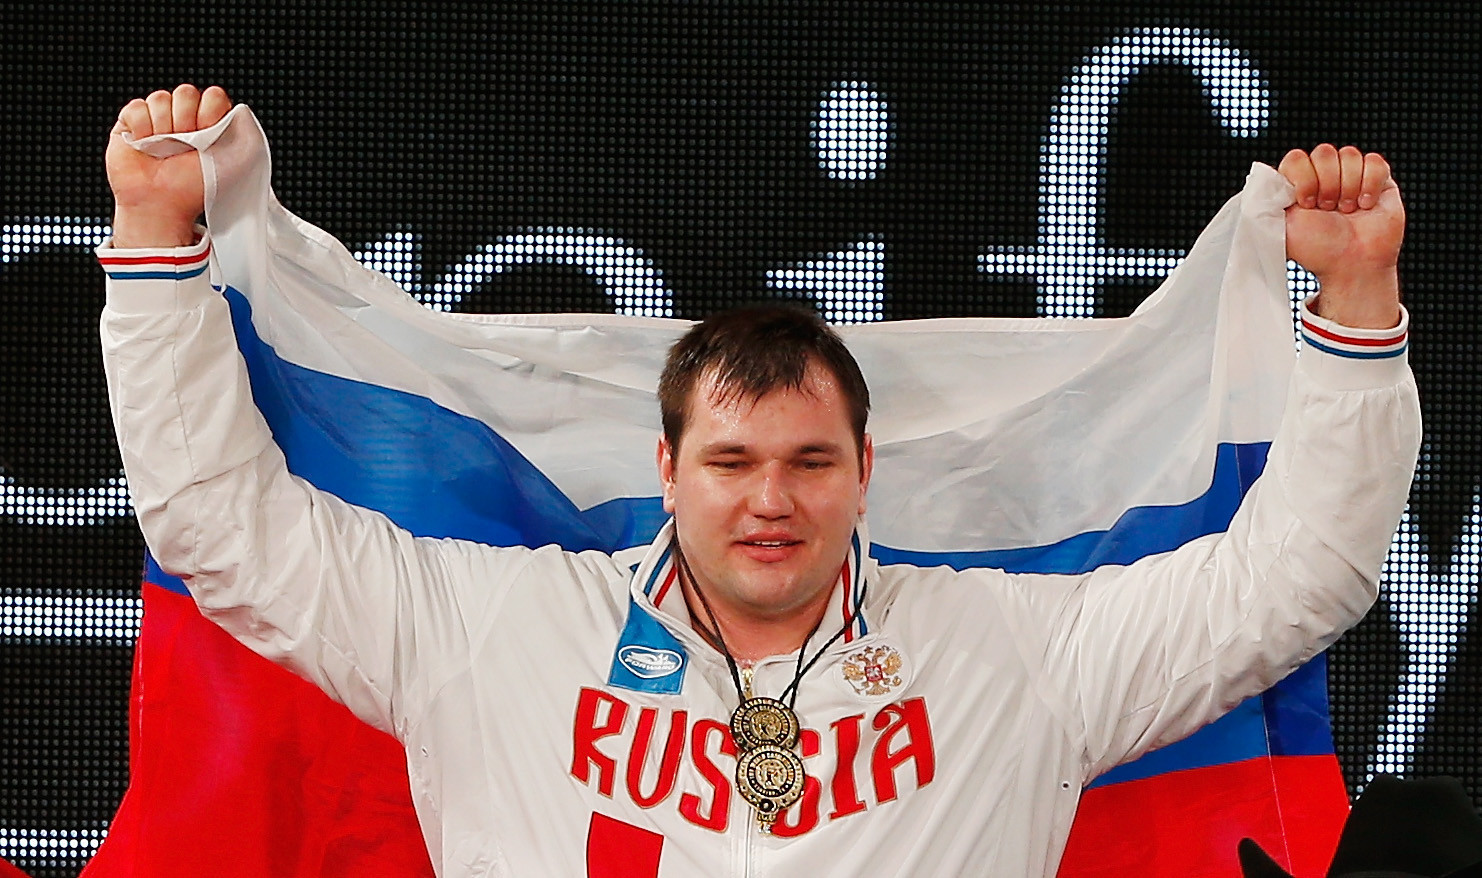 Russia's Lovchev earns place at European Championships upon return from doping ban